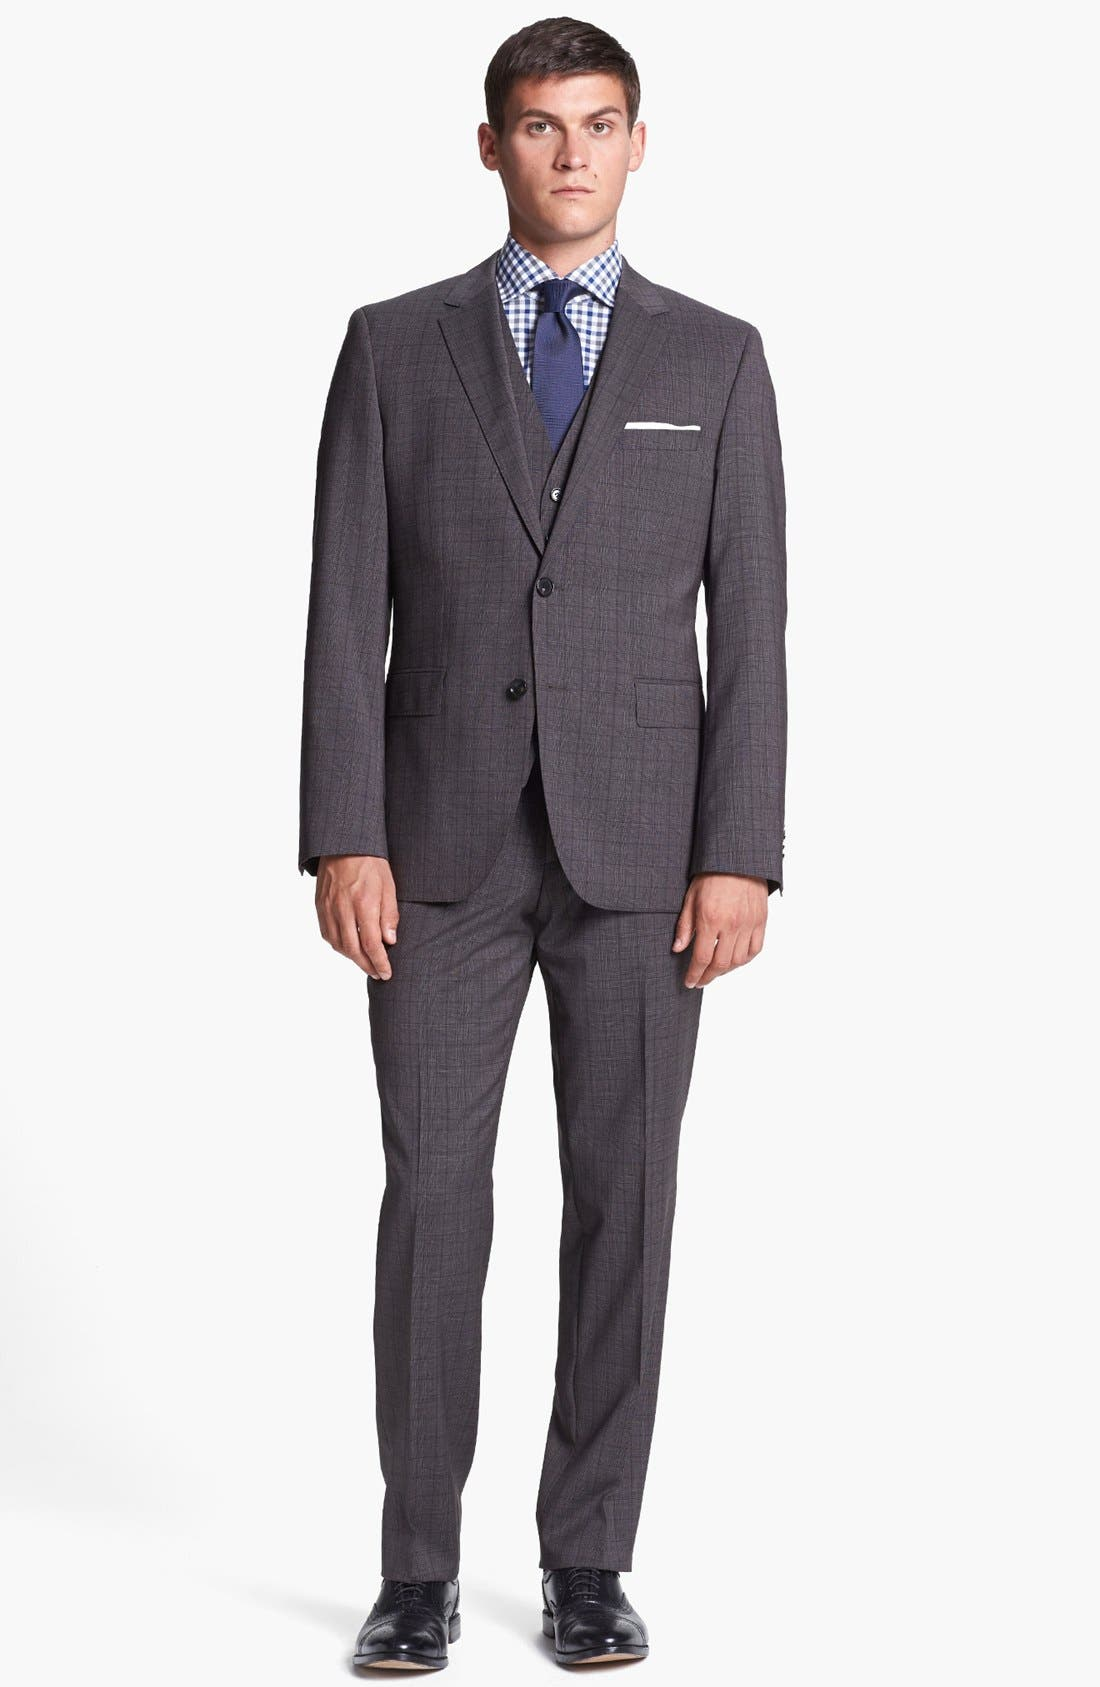 Alternate Image 1 Selected - BOSS HUGO BOSS 'James/Sharp' Trim Fit Three Piece Plaid Suit